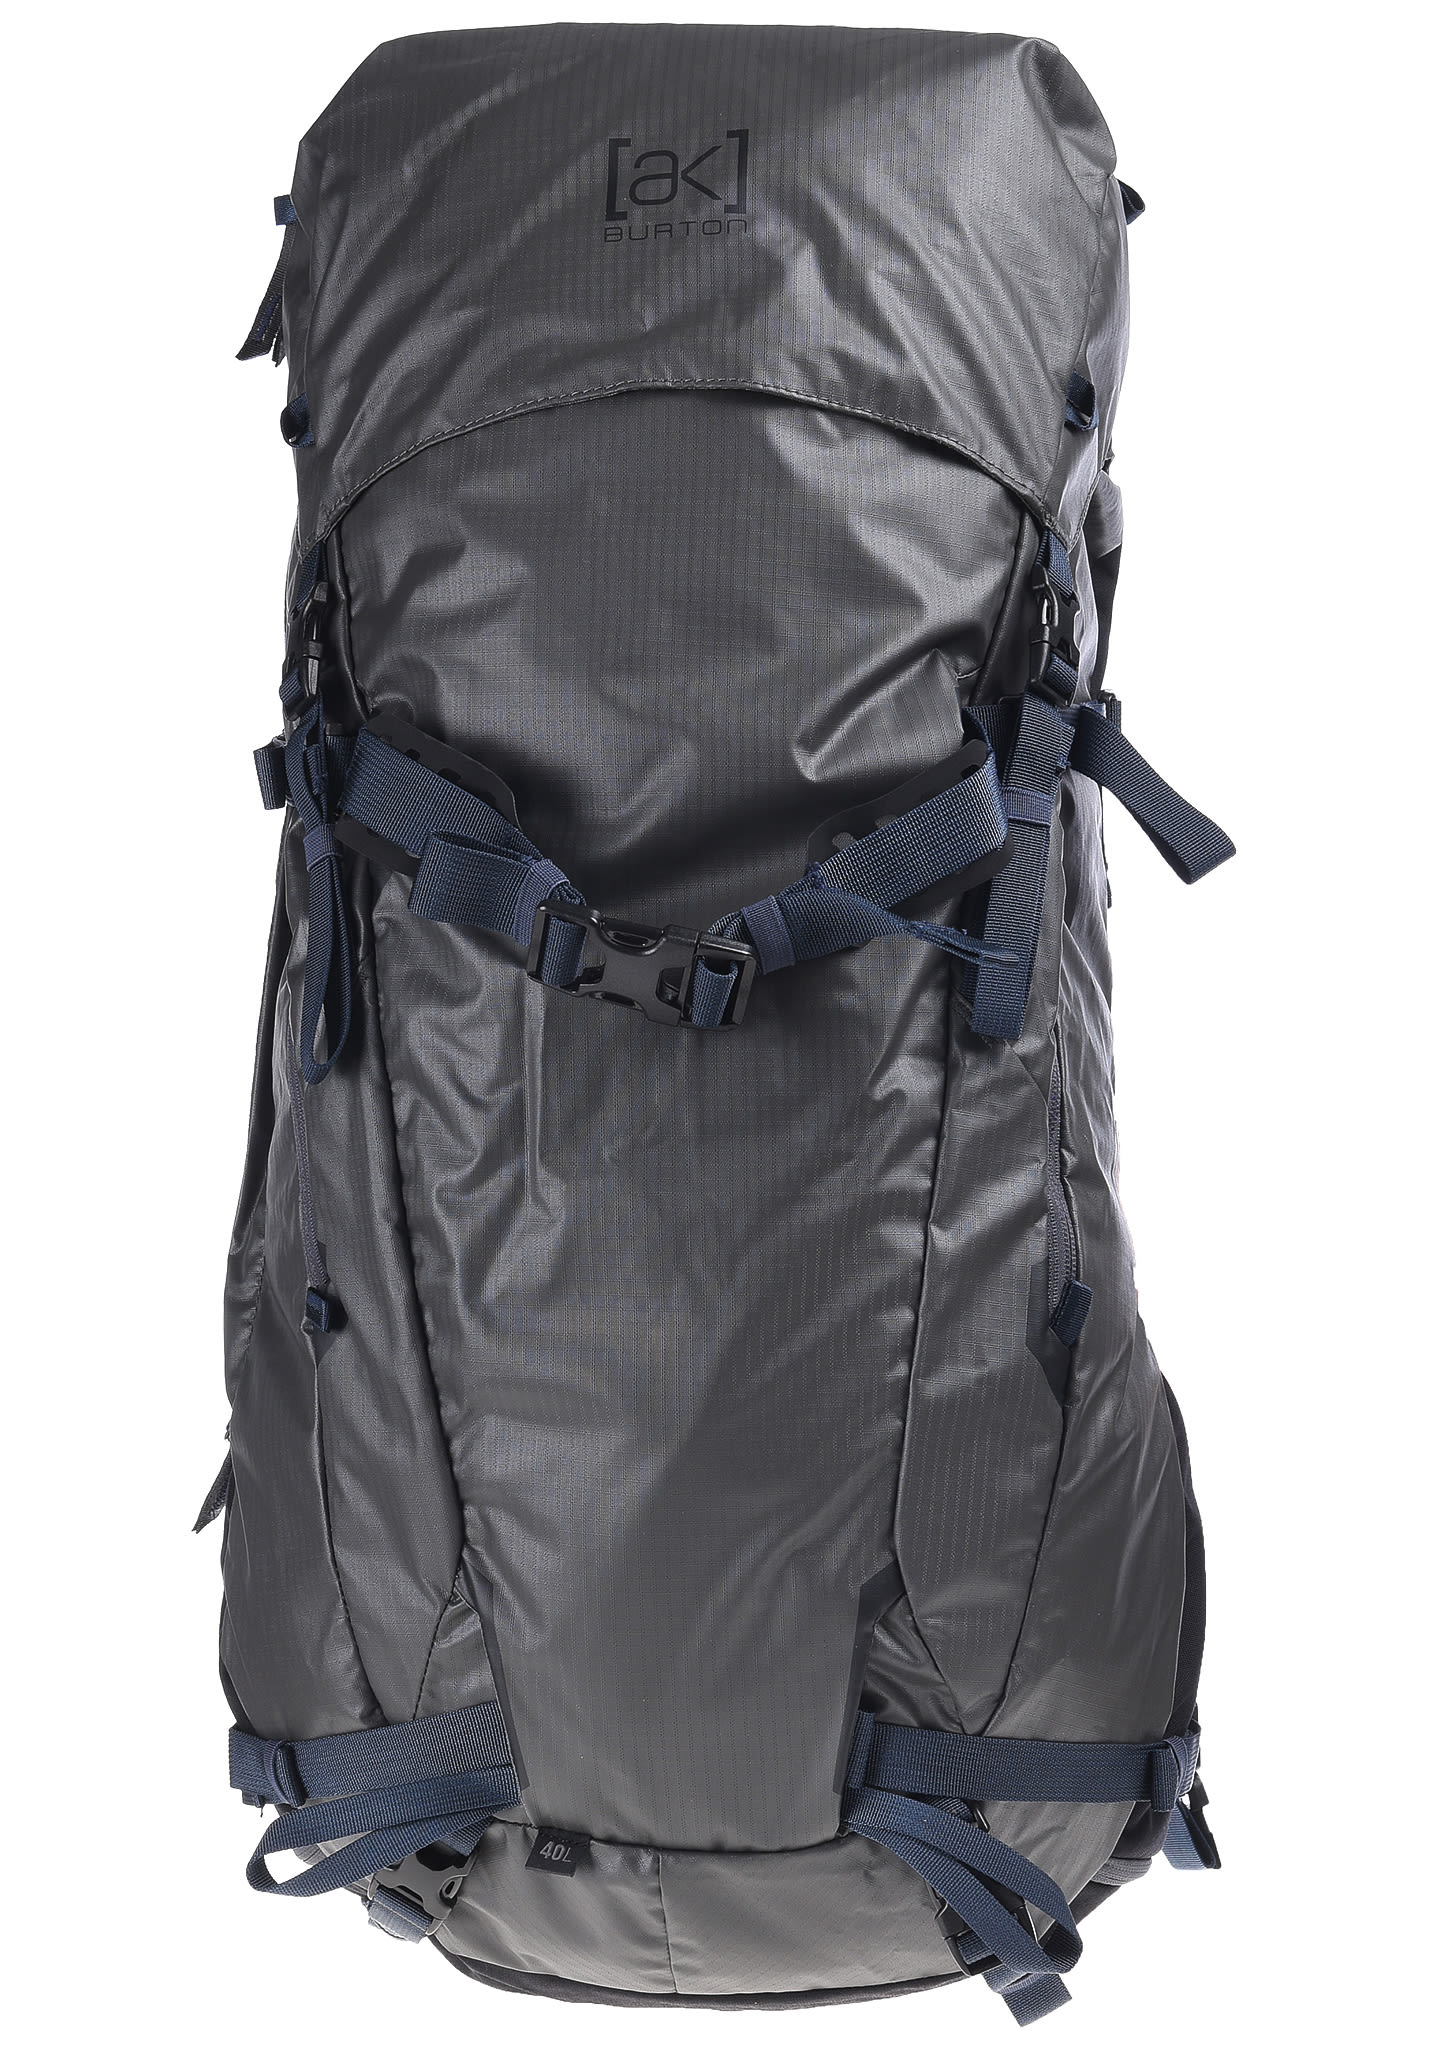 83d7461341fba Burton Ak Incline 40L - Rucksack - Schwarz - Planet Sports